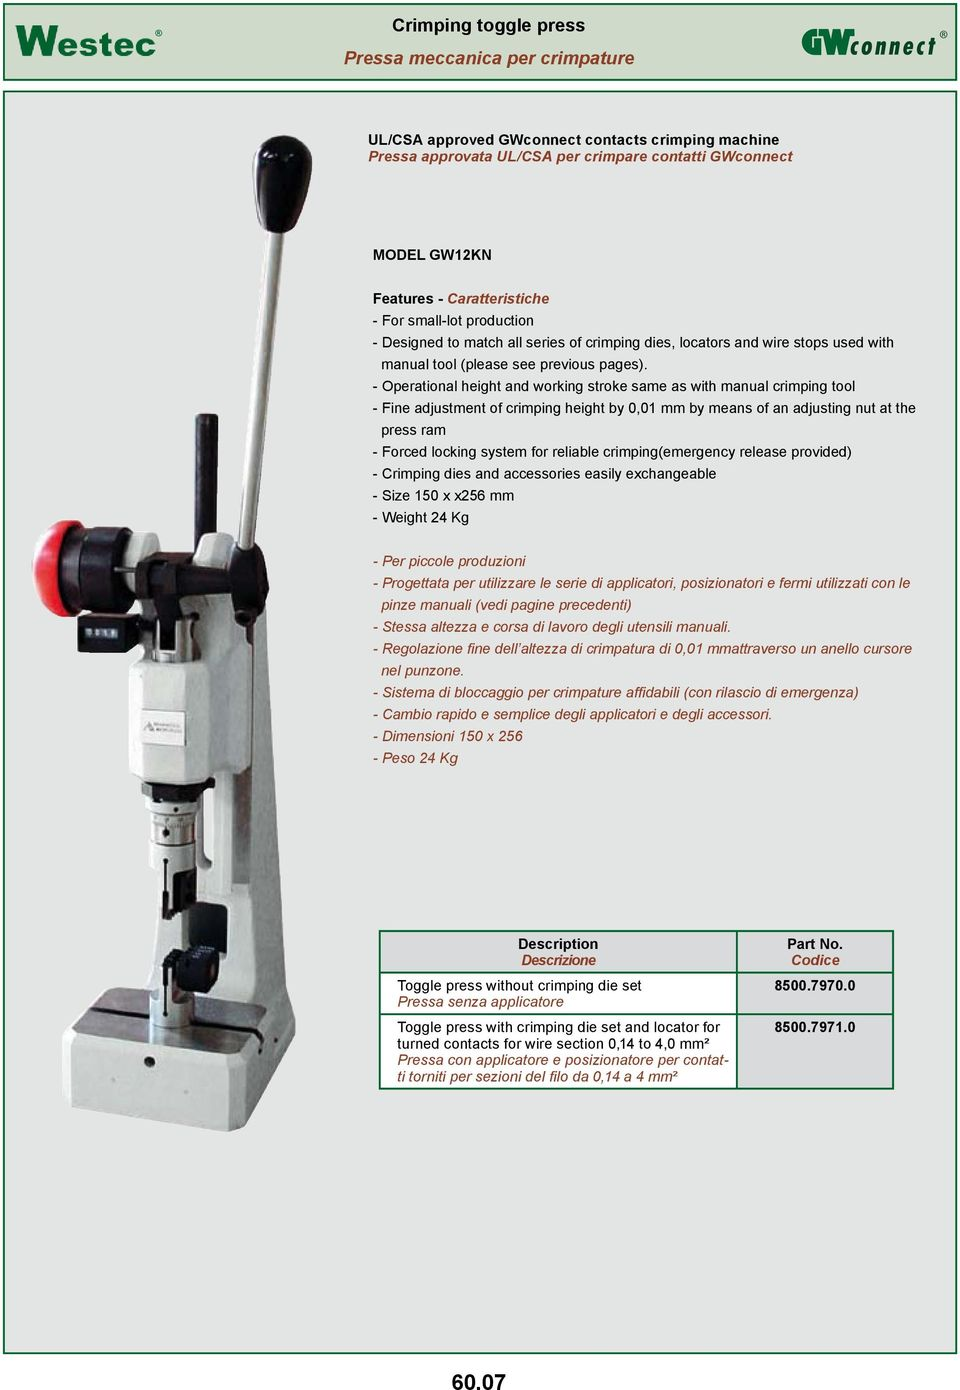 - Operational height and working stroke same as with manual crimping tool - Fine adjustment of crimping height by 0,01 mm by means of an adjusting nut at the press ram - Forced locking system for